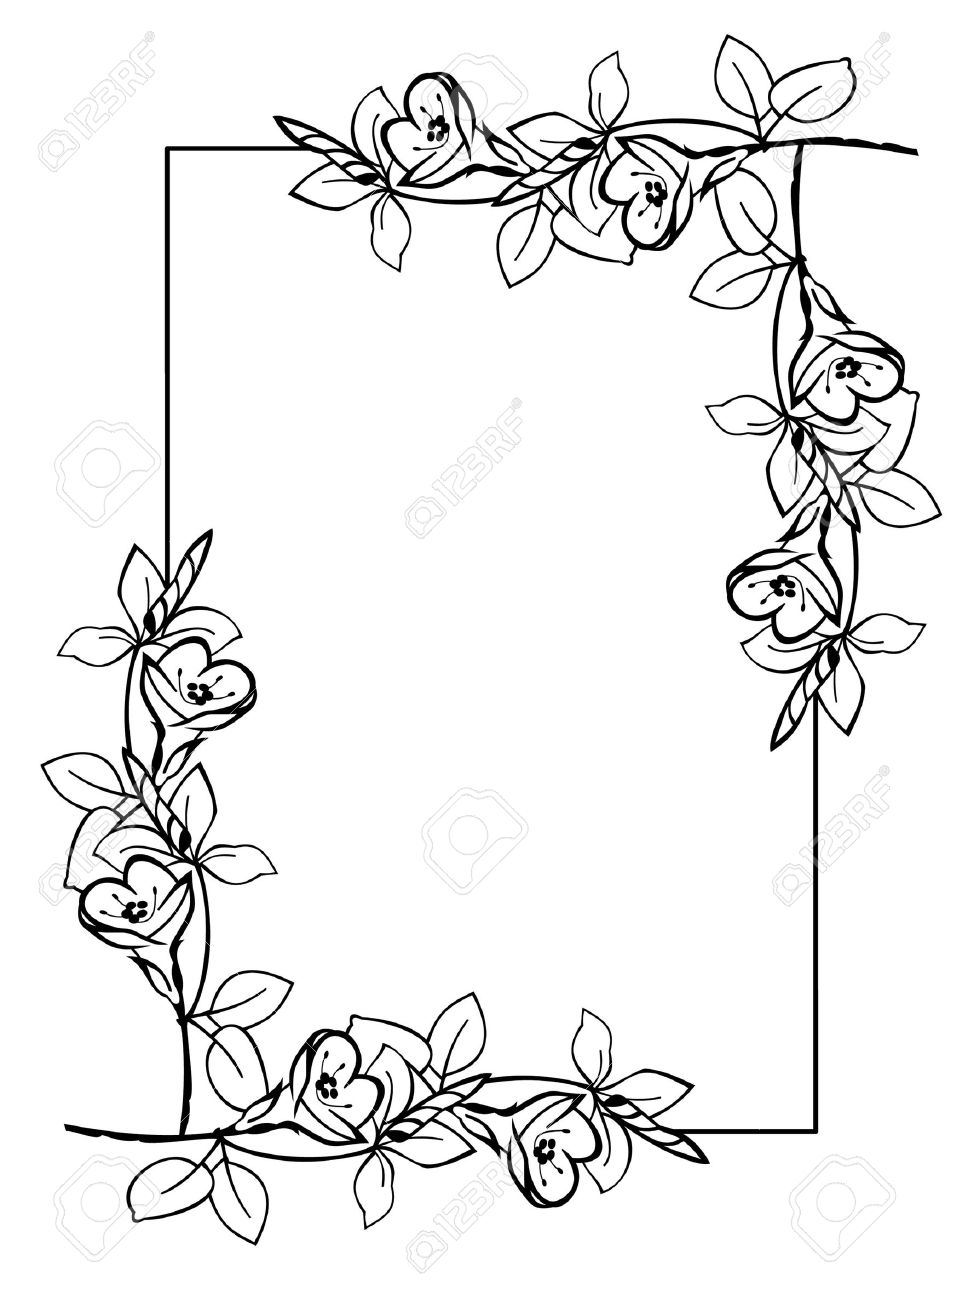 968x1300 Silhouette Frame With Flowers Royalty Free Cliparts, Vectors,